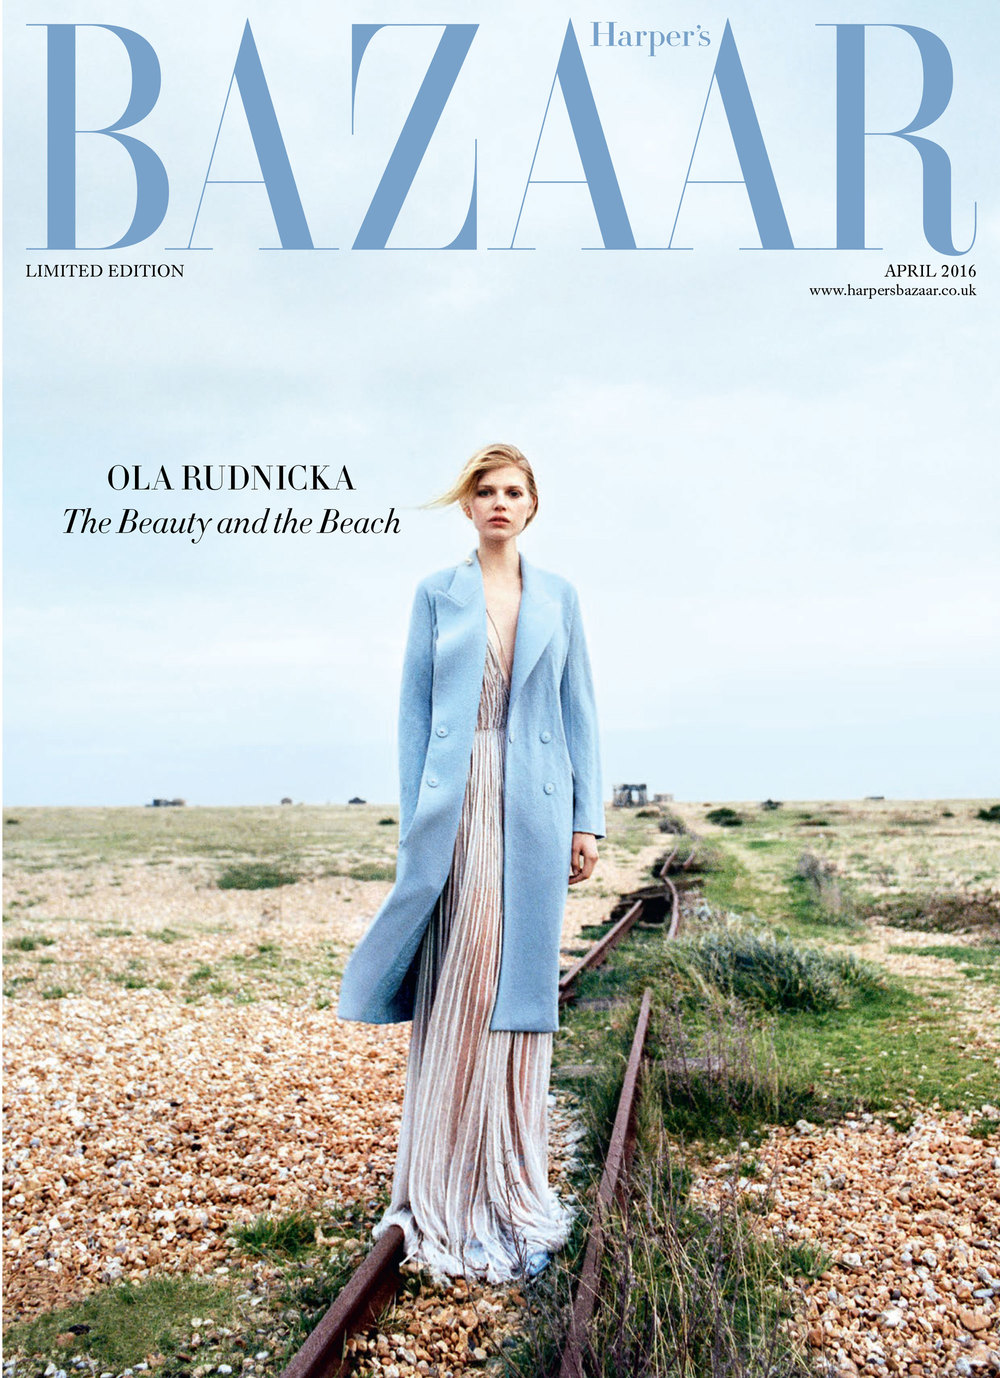 Ola Rudnicka Cover for Harper's Bazaar, styled by Charlie Harrington.